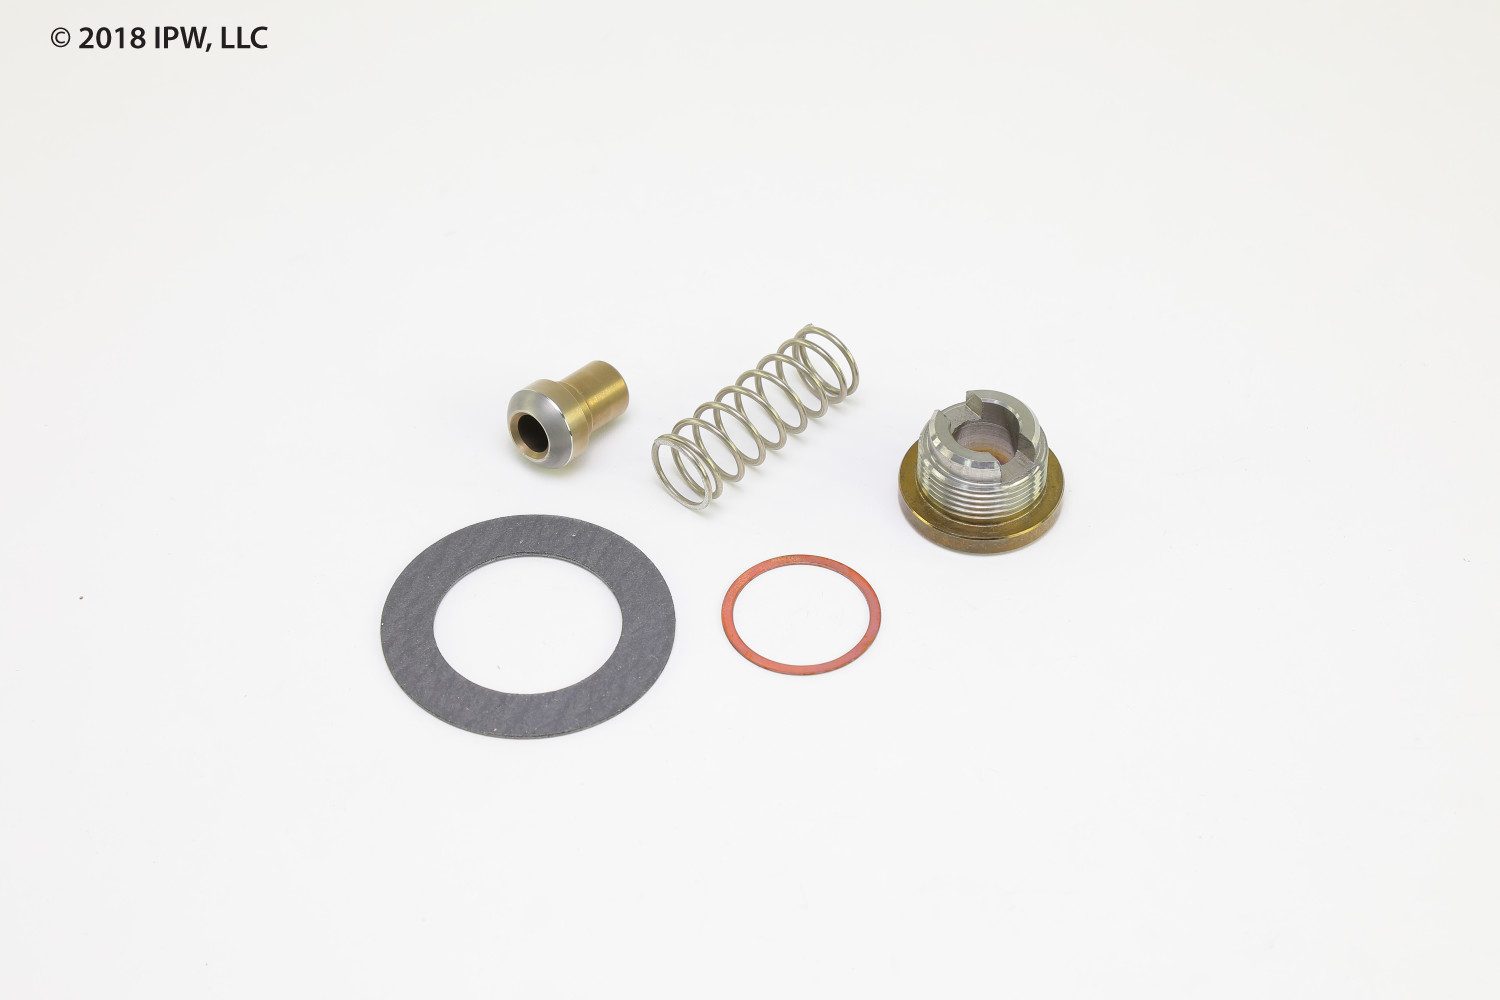 Armstrong International D25366 GP-1000 MAIN VALVE KIT,1/2&3/4